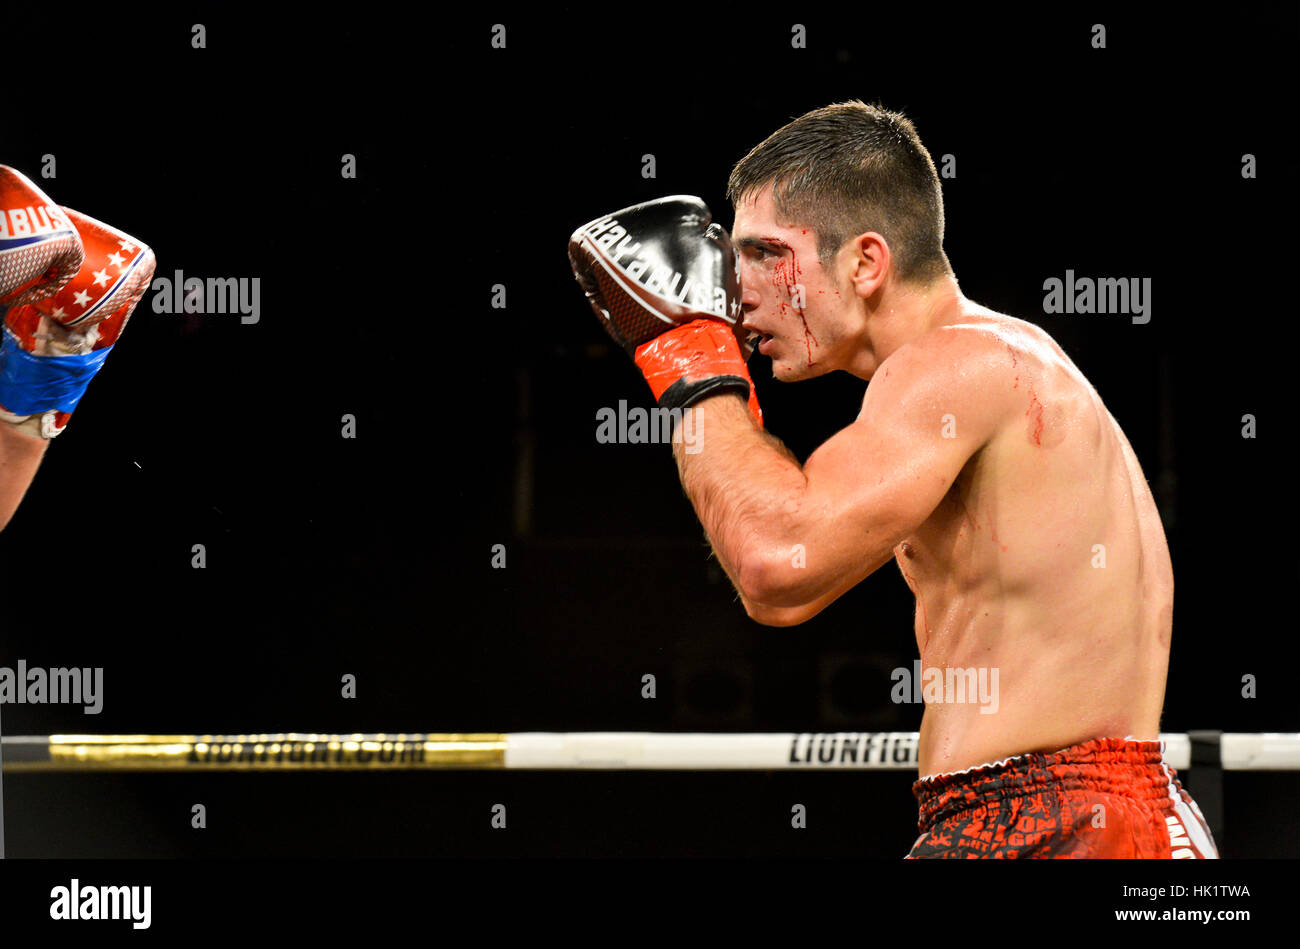 Bloody Mma Fight Stock Photos & Bloody Mma Fight Stock